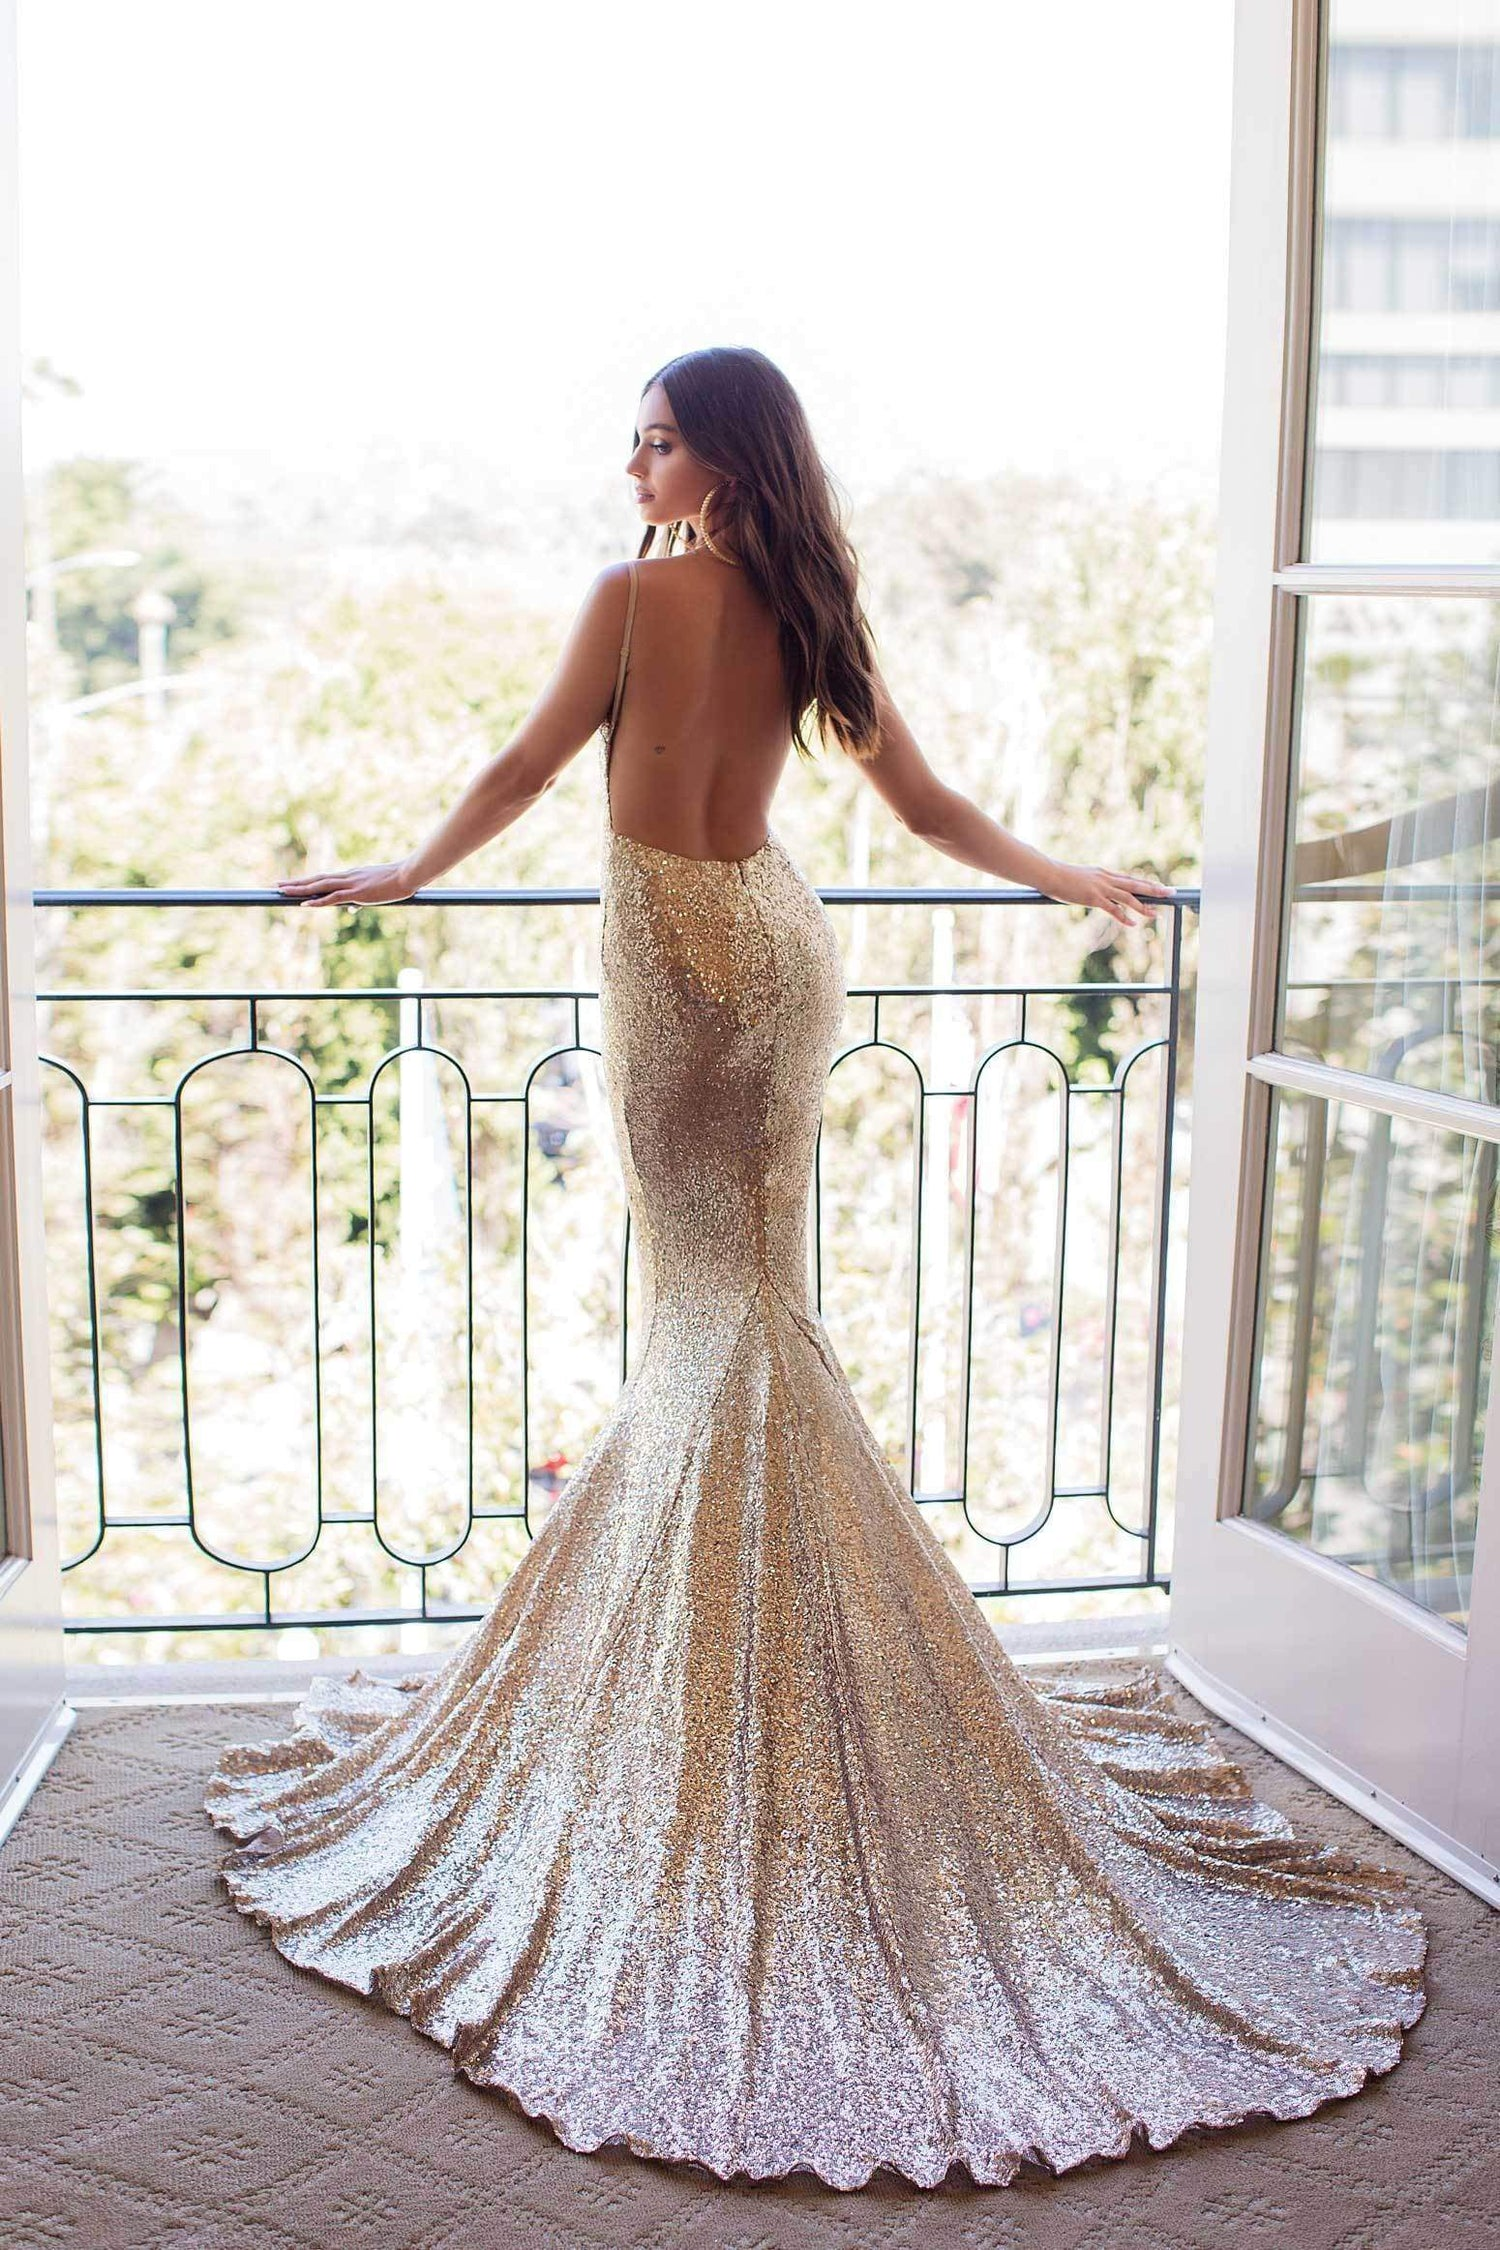 f840c1e7 Yassmine Luxe - Copper Gold Backless Sequin Gown with Mermaid Train ...